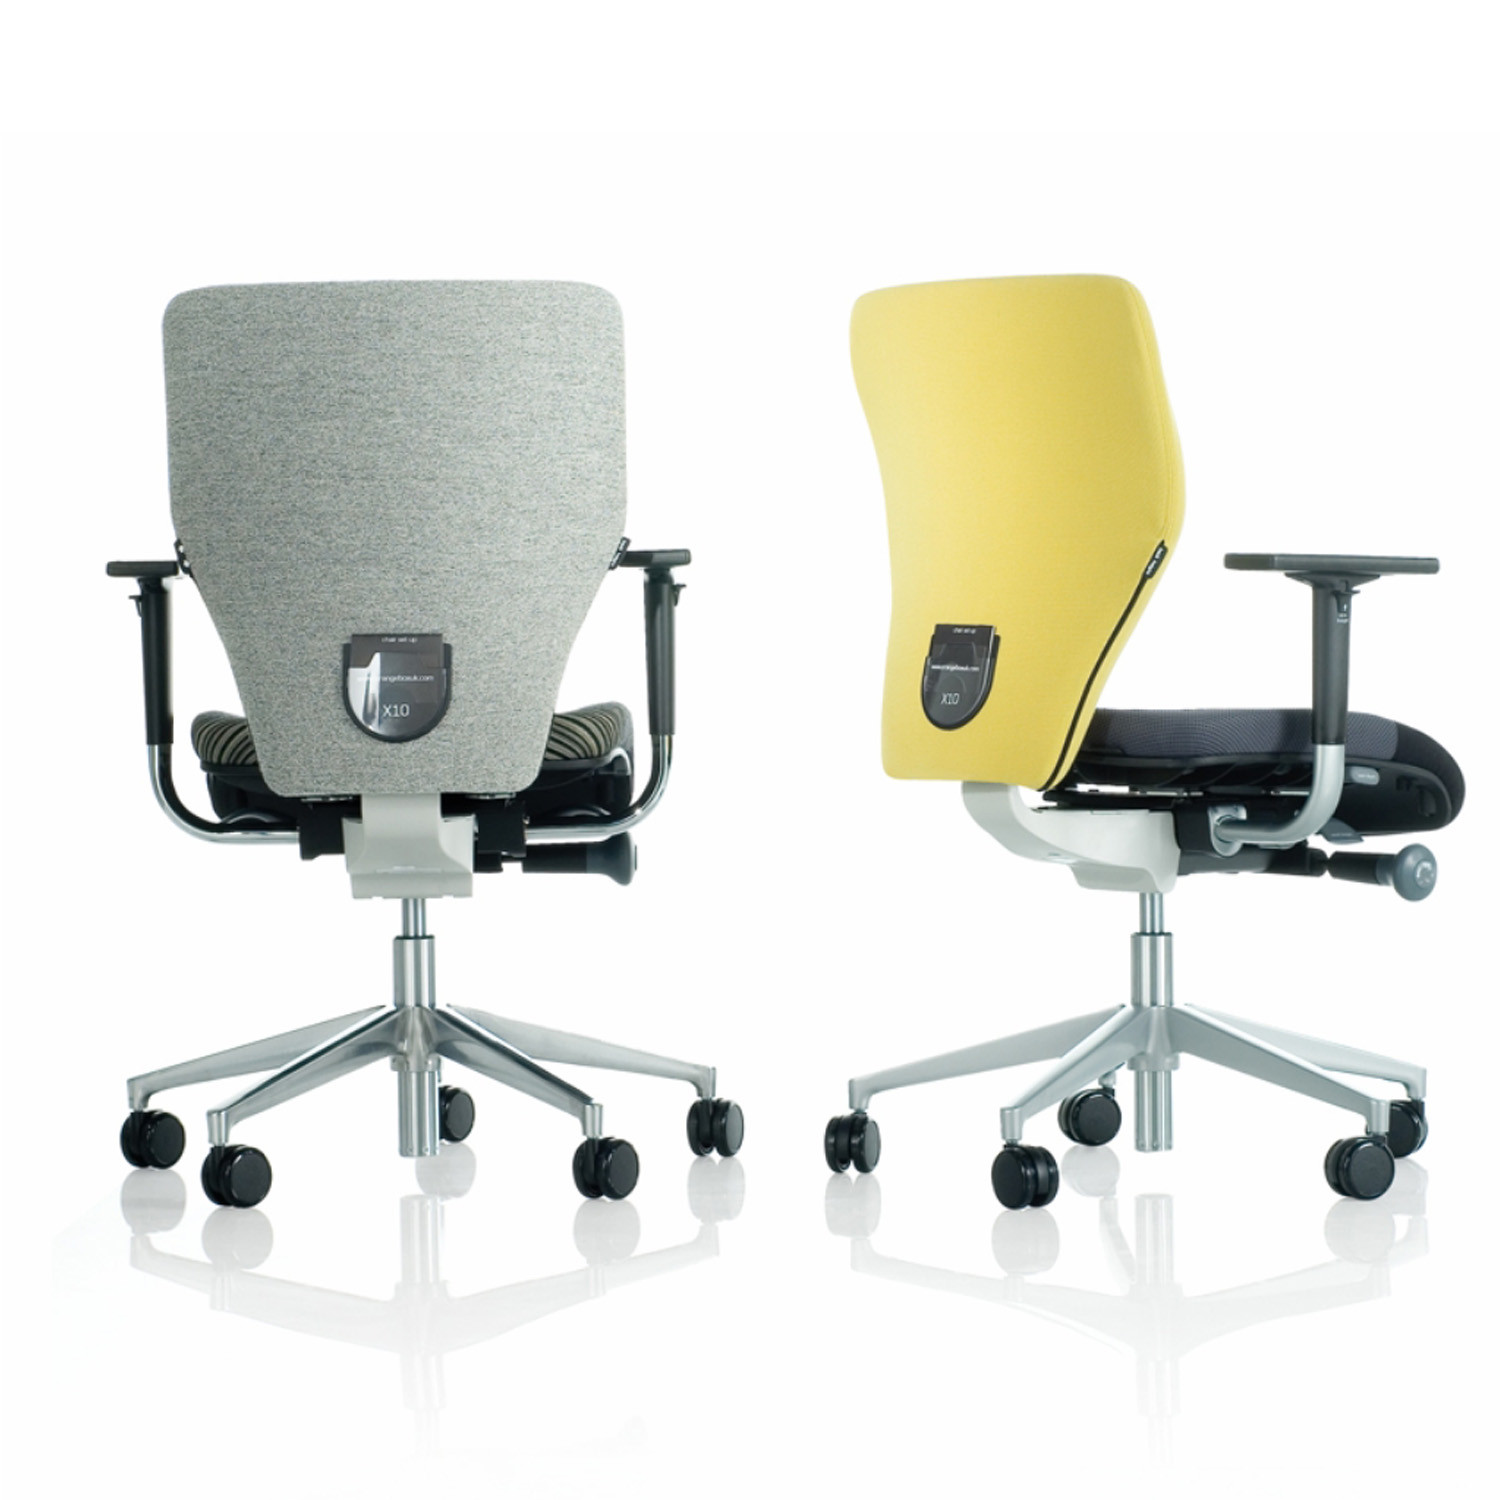 X10 Office Chairs from Orangebox